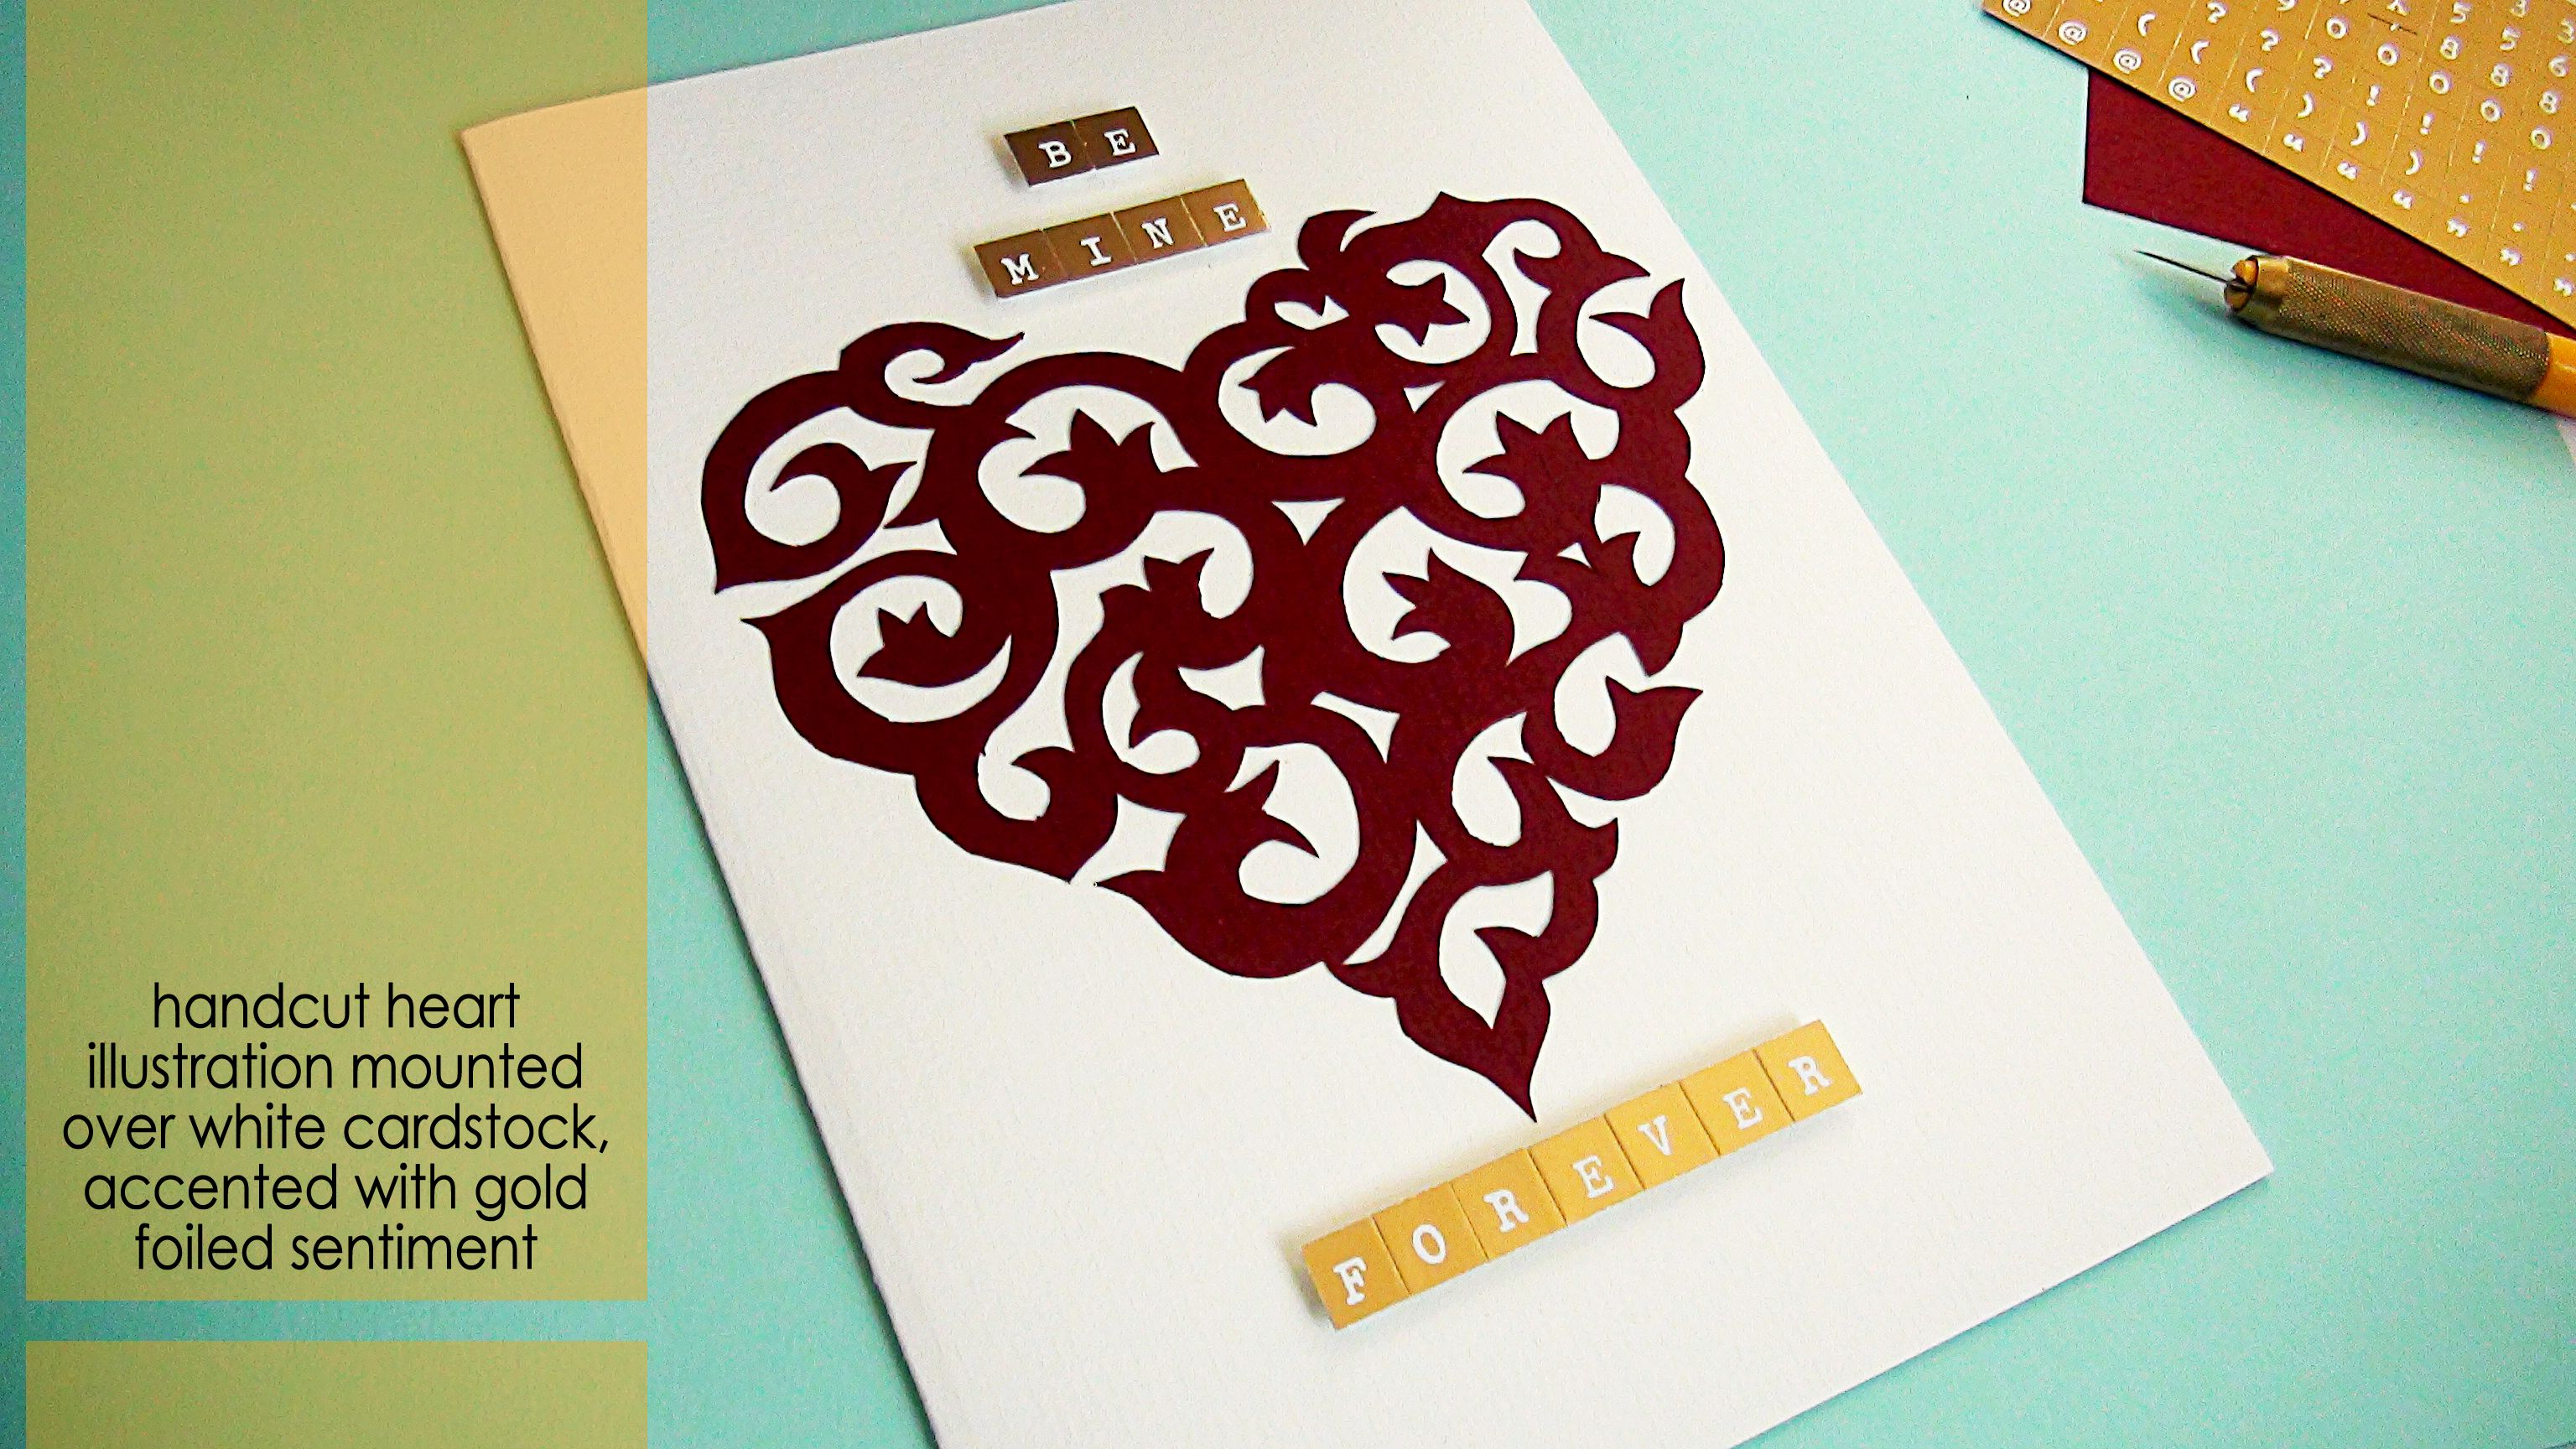 #Eldesign #valentine collection '15 #handmadecards #hand-cut art #love #heart #cards